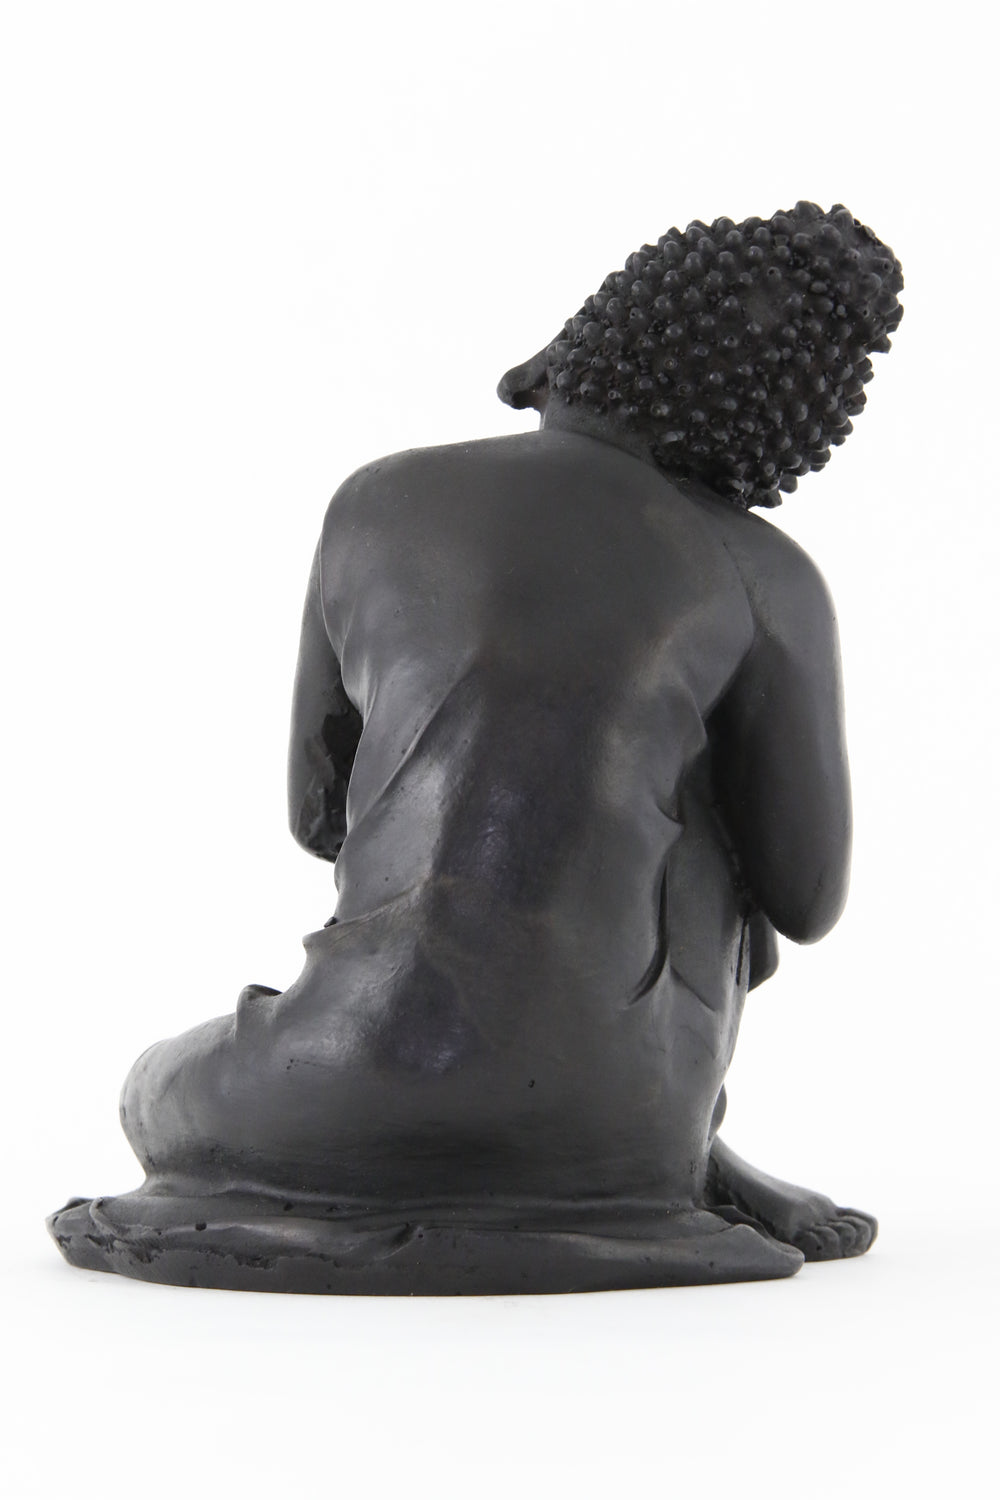 RESTING BUDDHA STATUE DARK LARGE BACK VIEW